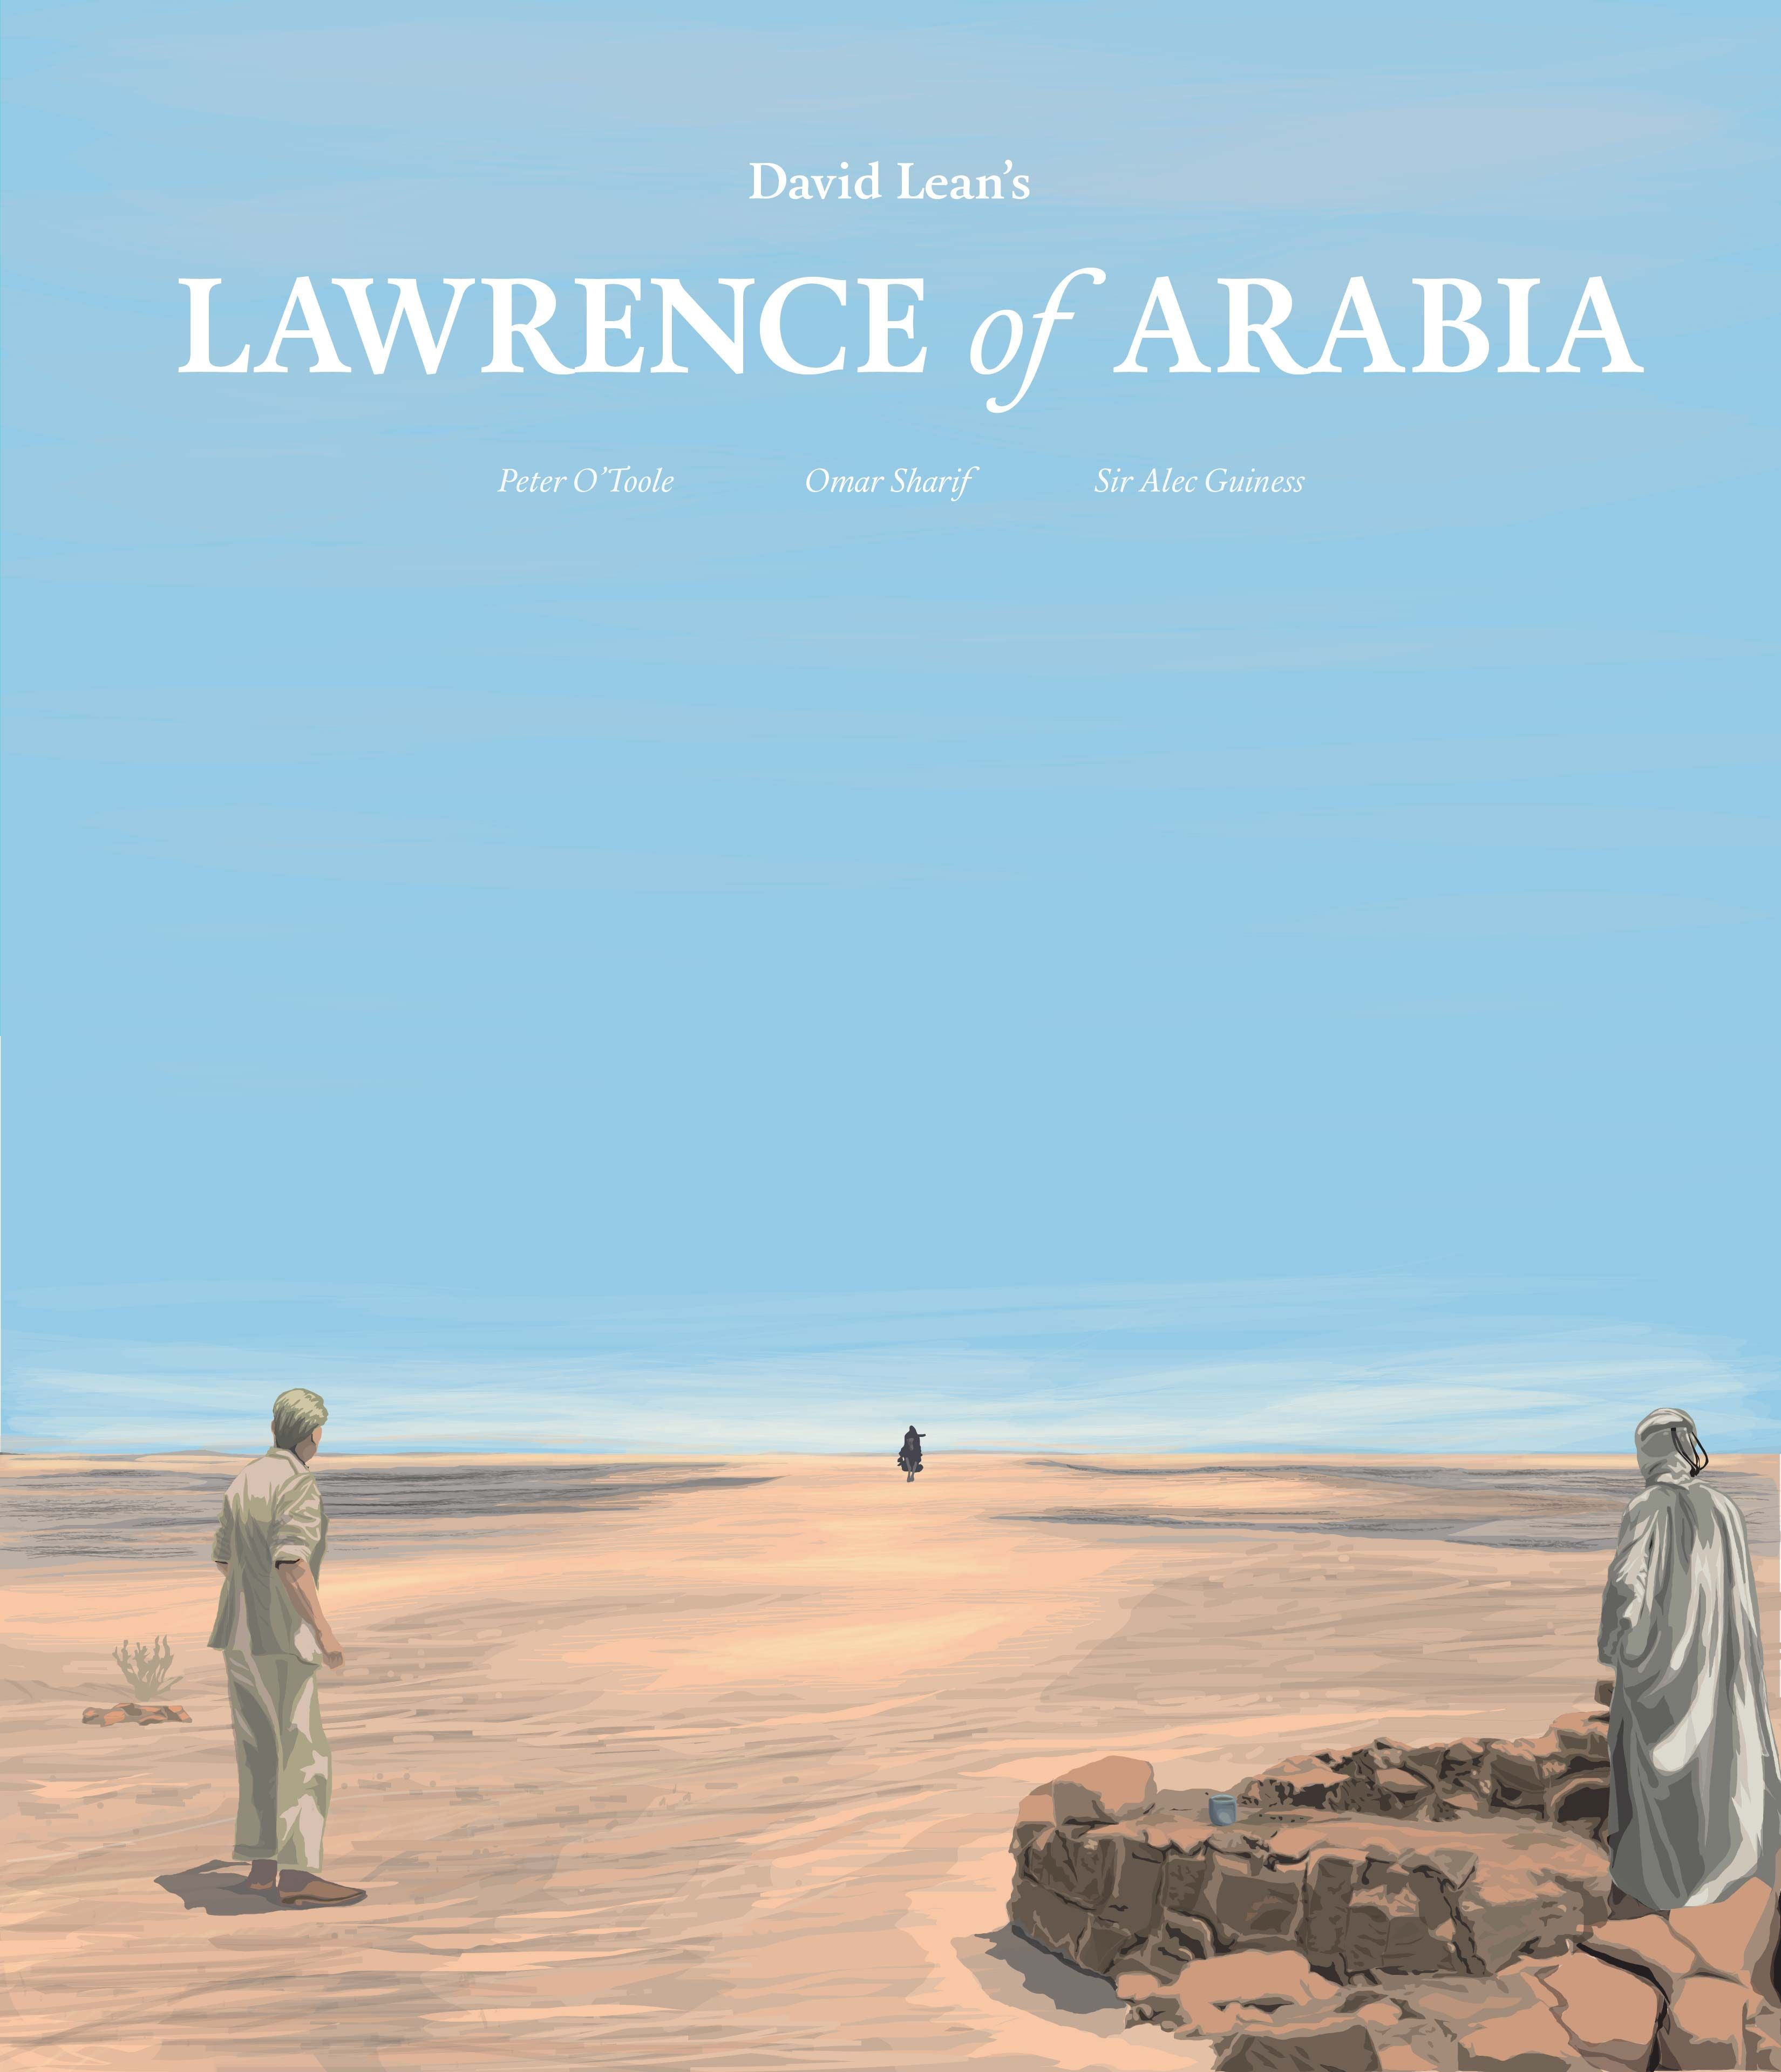 Lawrence of Arabia 1962 [3800x3840] [OC] Writing Lawrence of 3300x3840